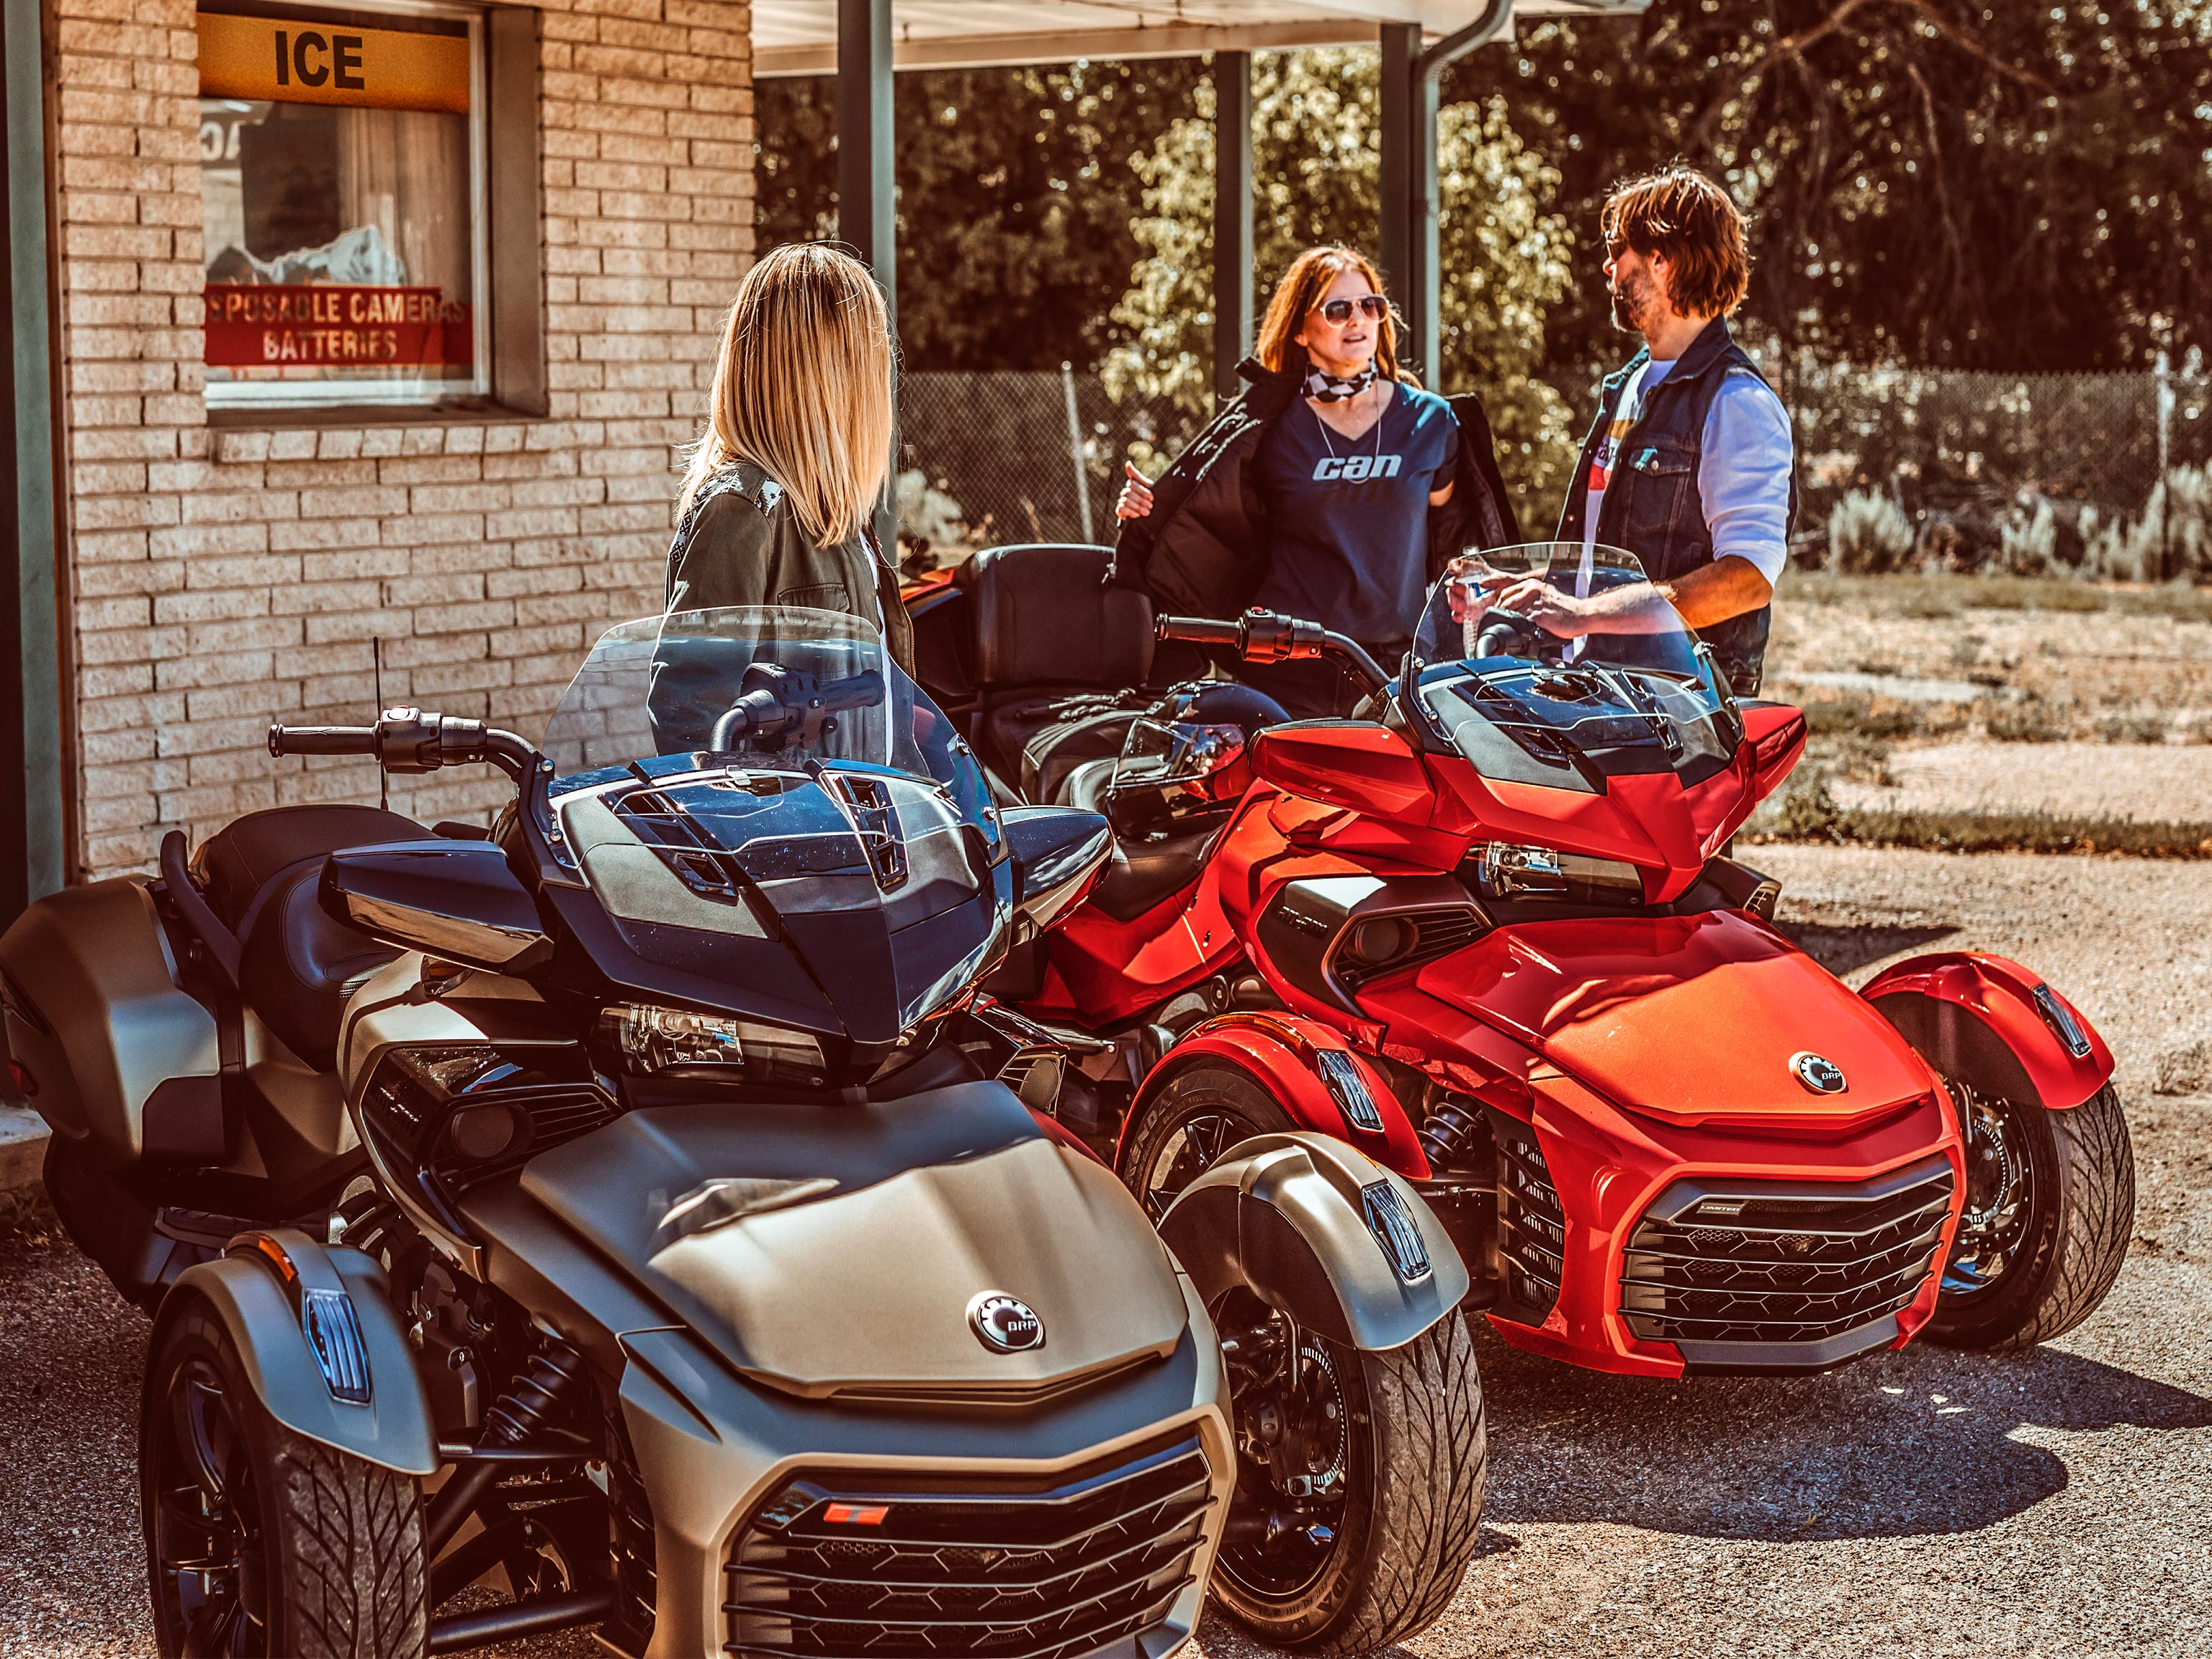 Group of riders next to Can-Am Spyder